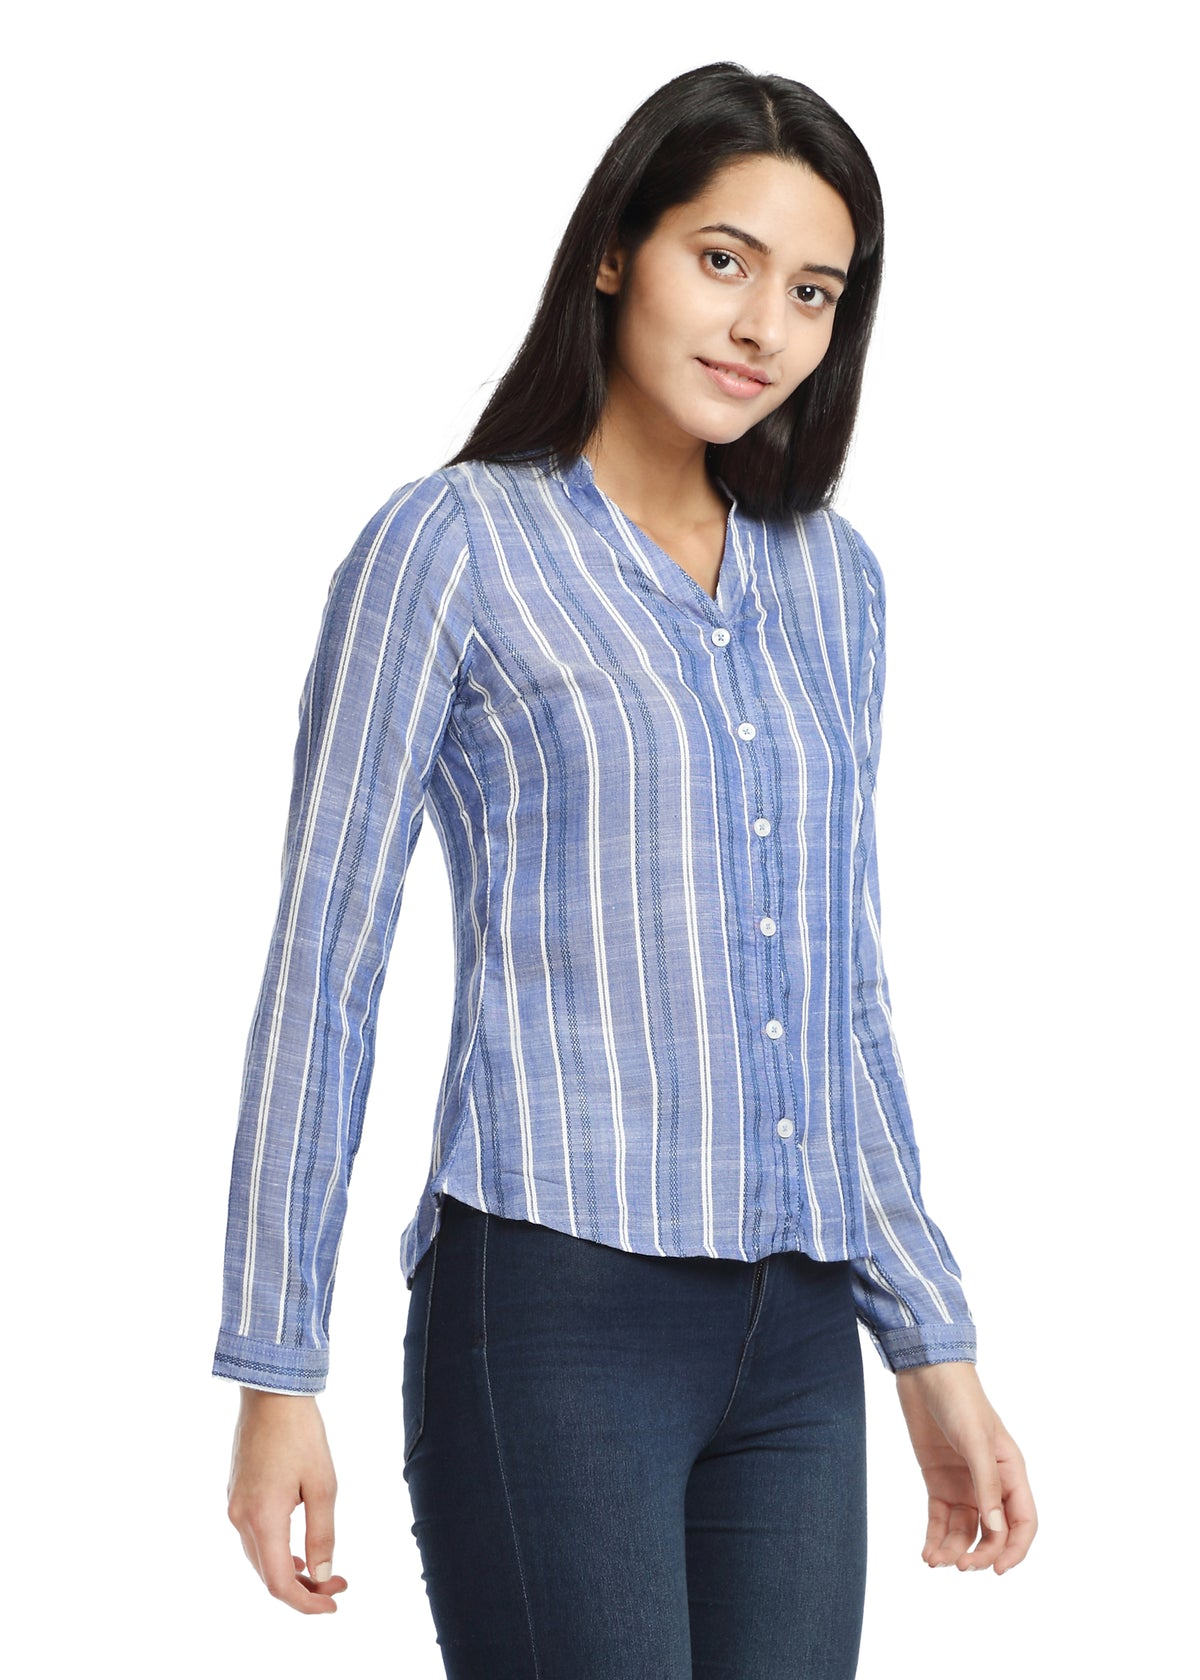 Light Blue Stripes Shirt